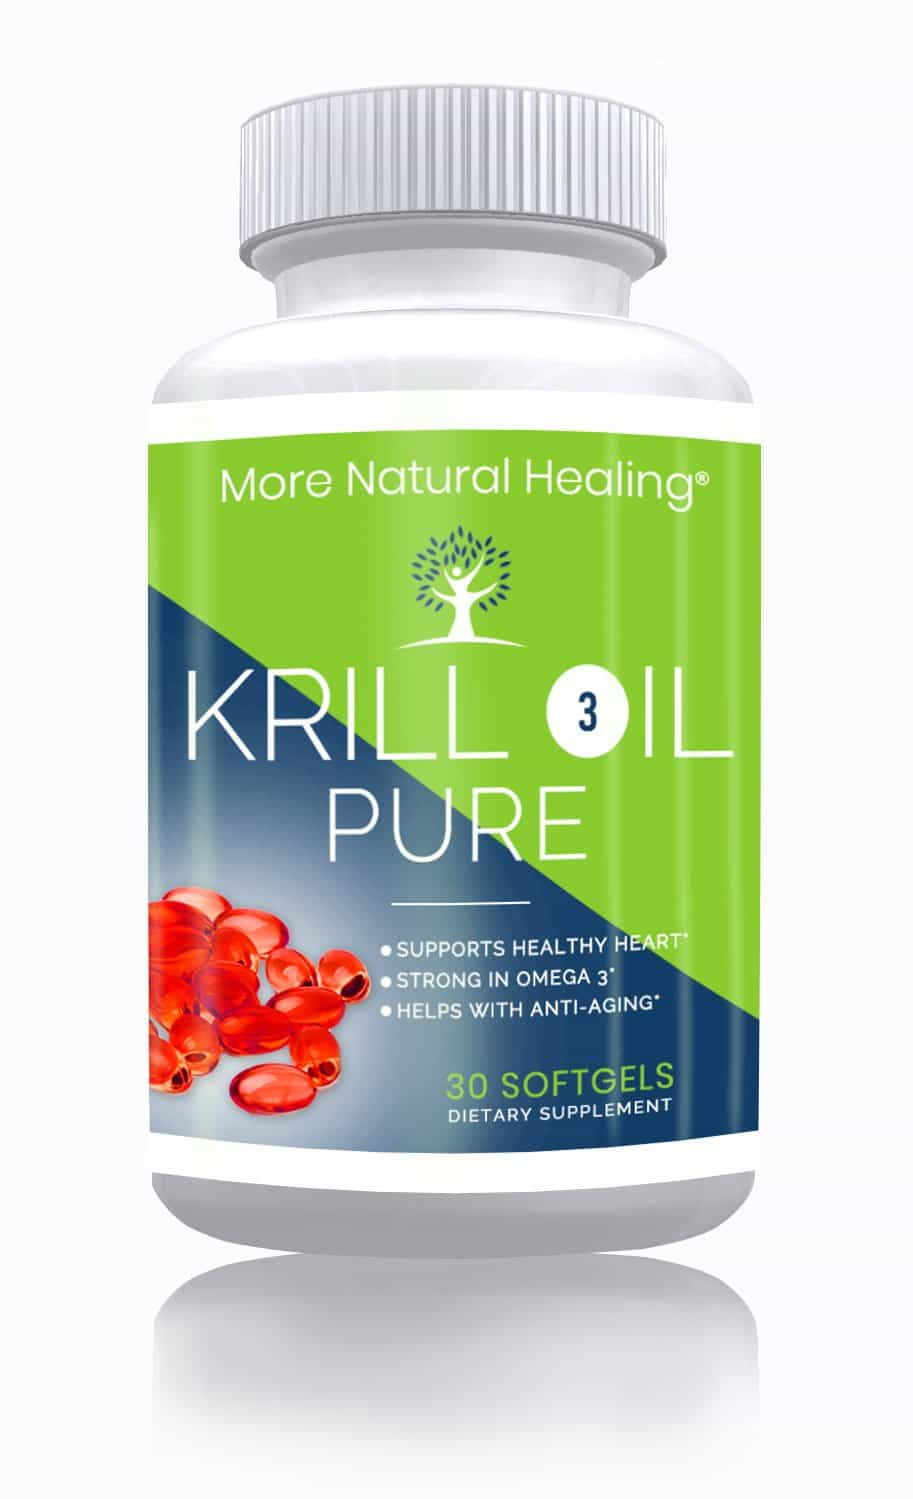 Pure Krill Oil Omega 3 Softgels Heart Health and Anti Aging Supplement - More Natural Healing